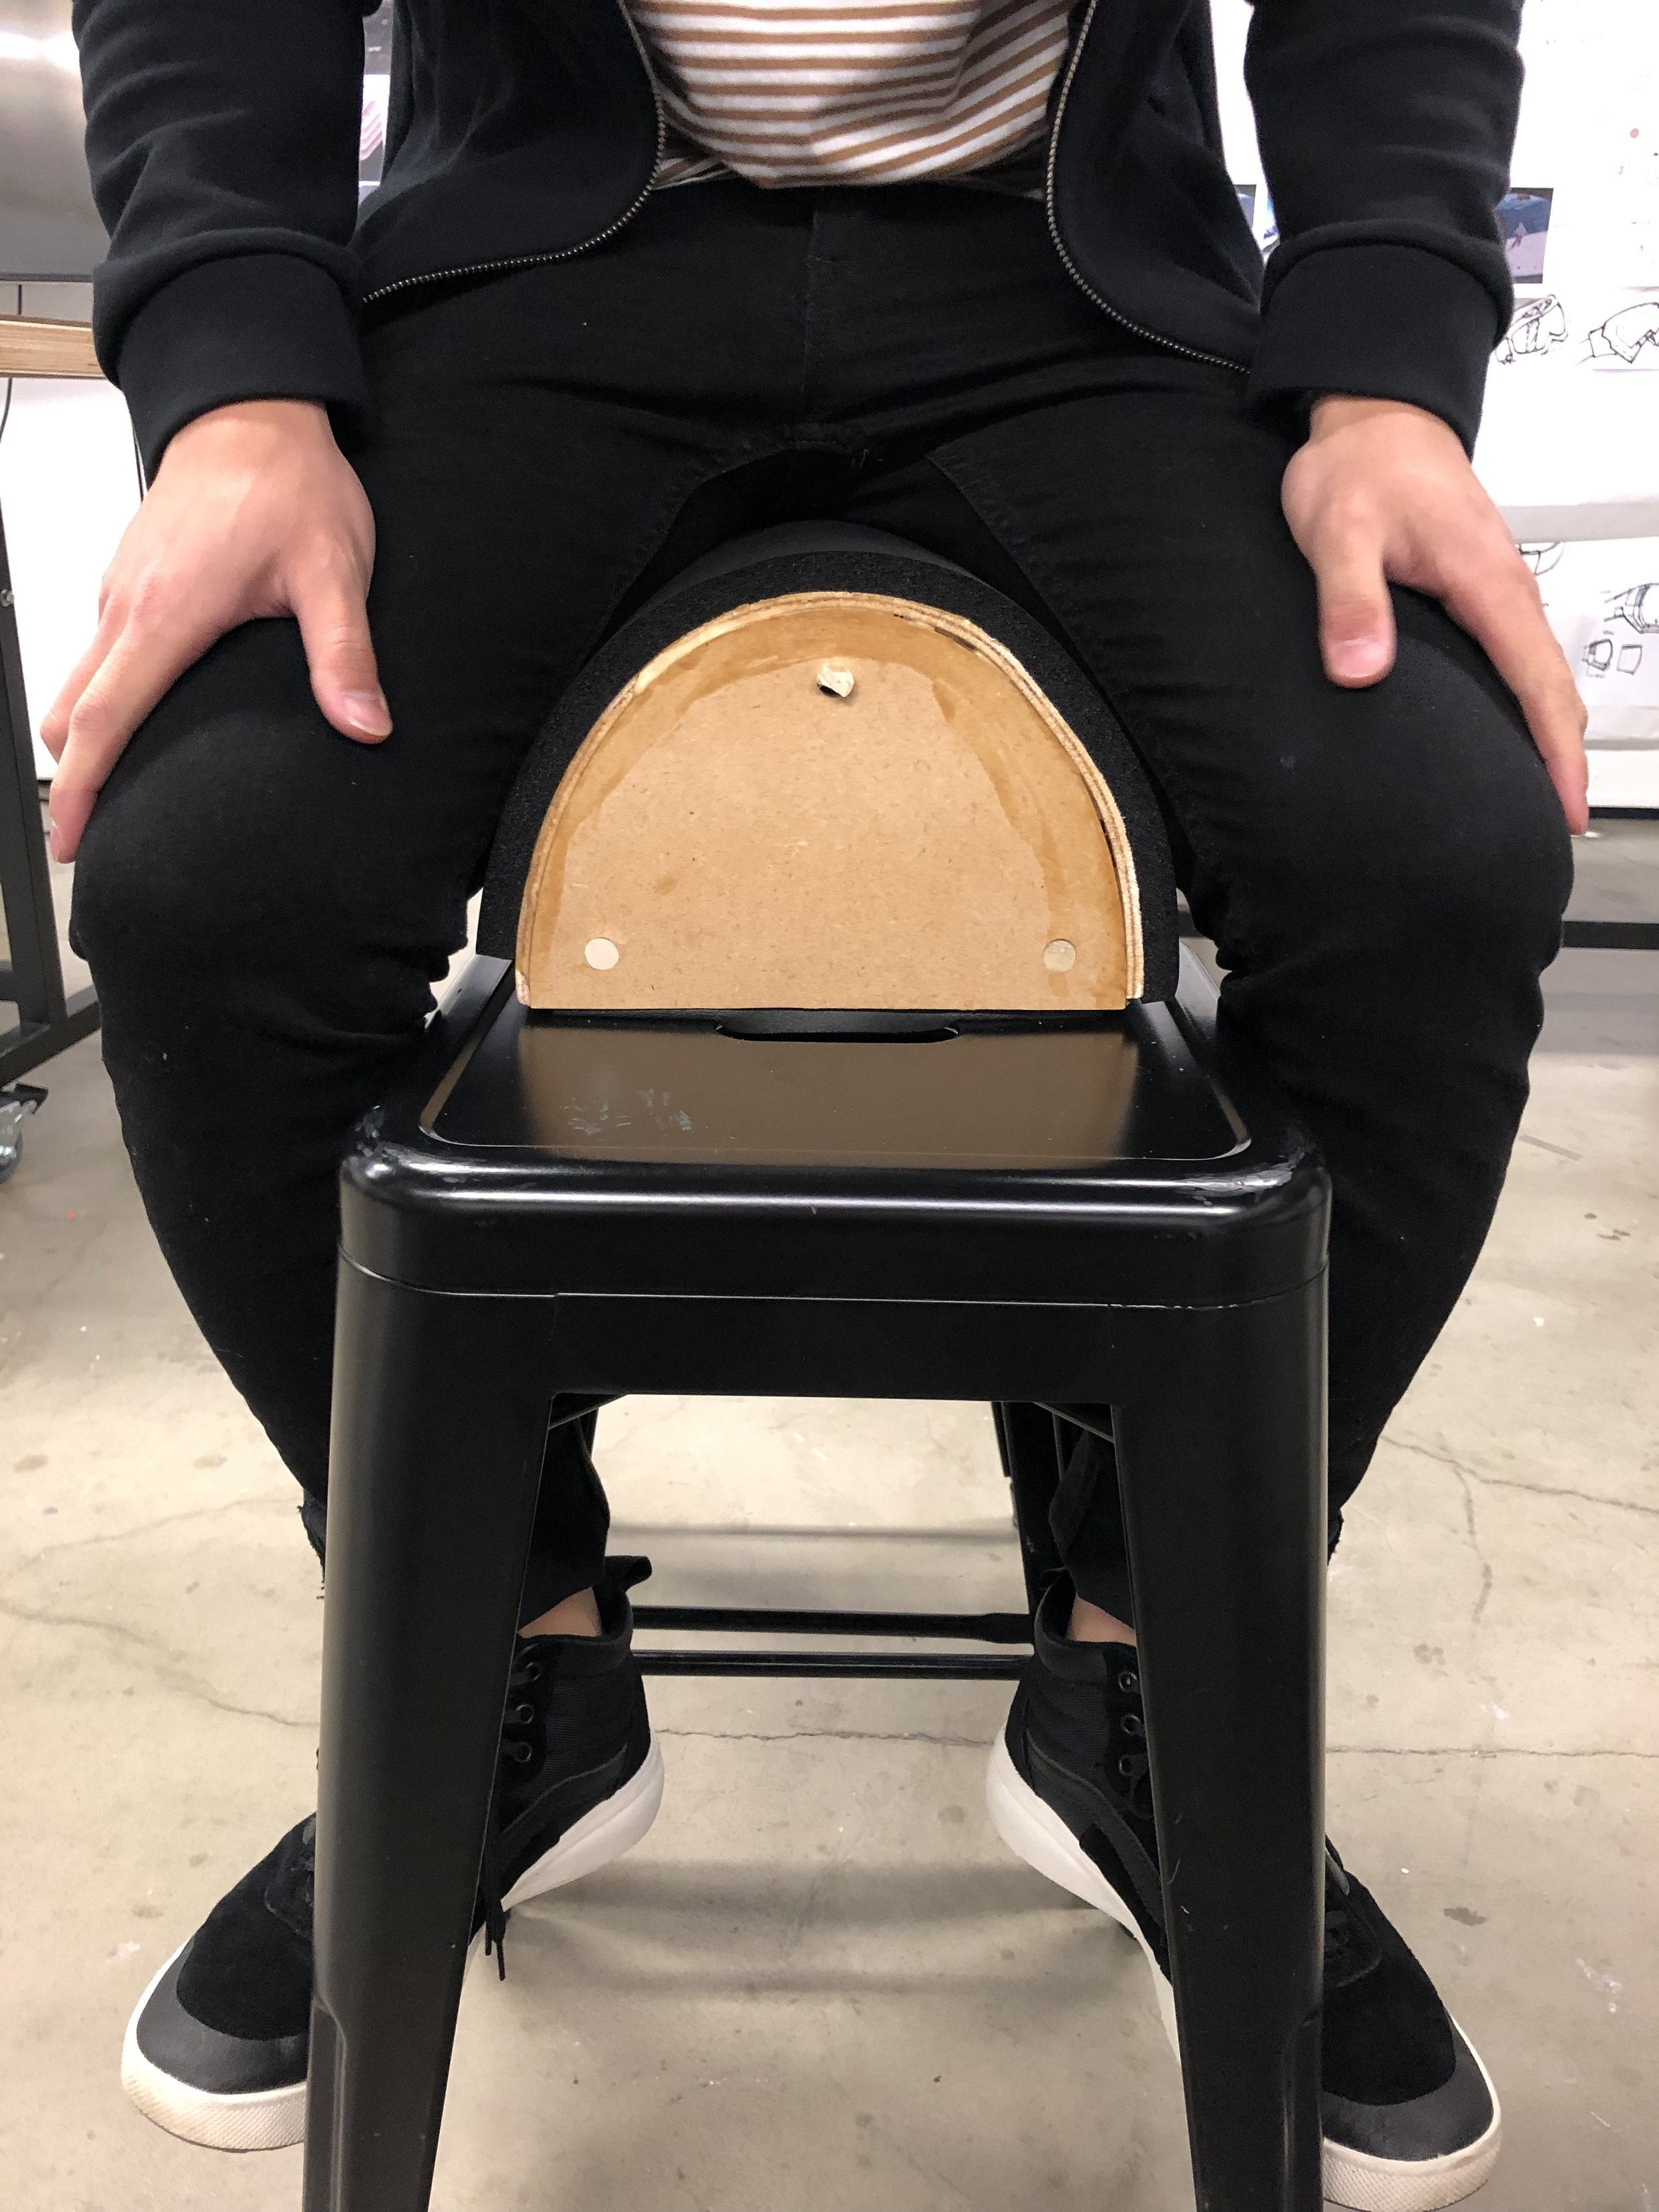 A view of saddle seating style.